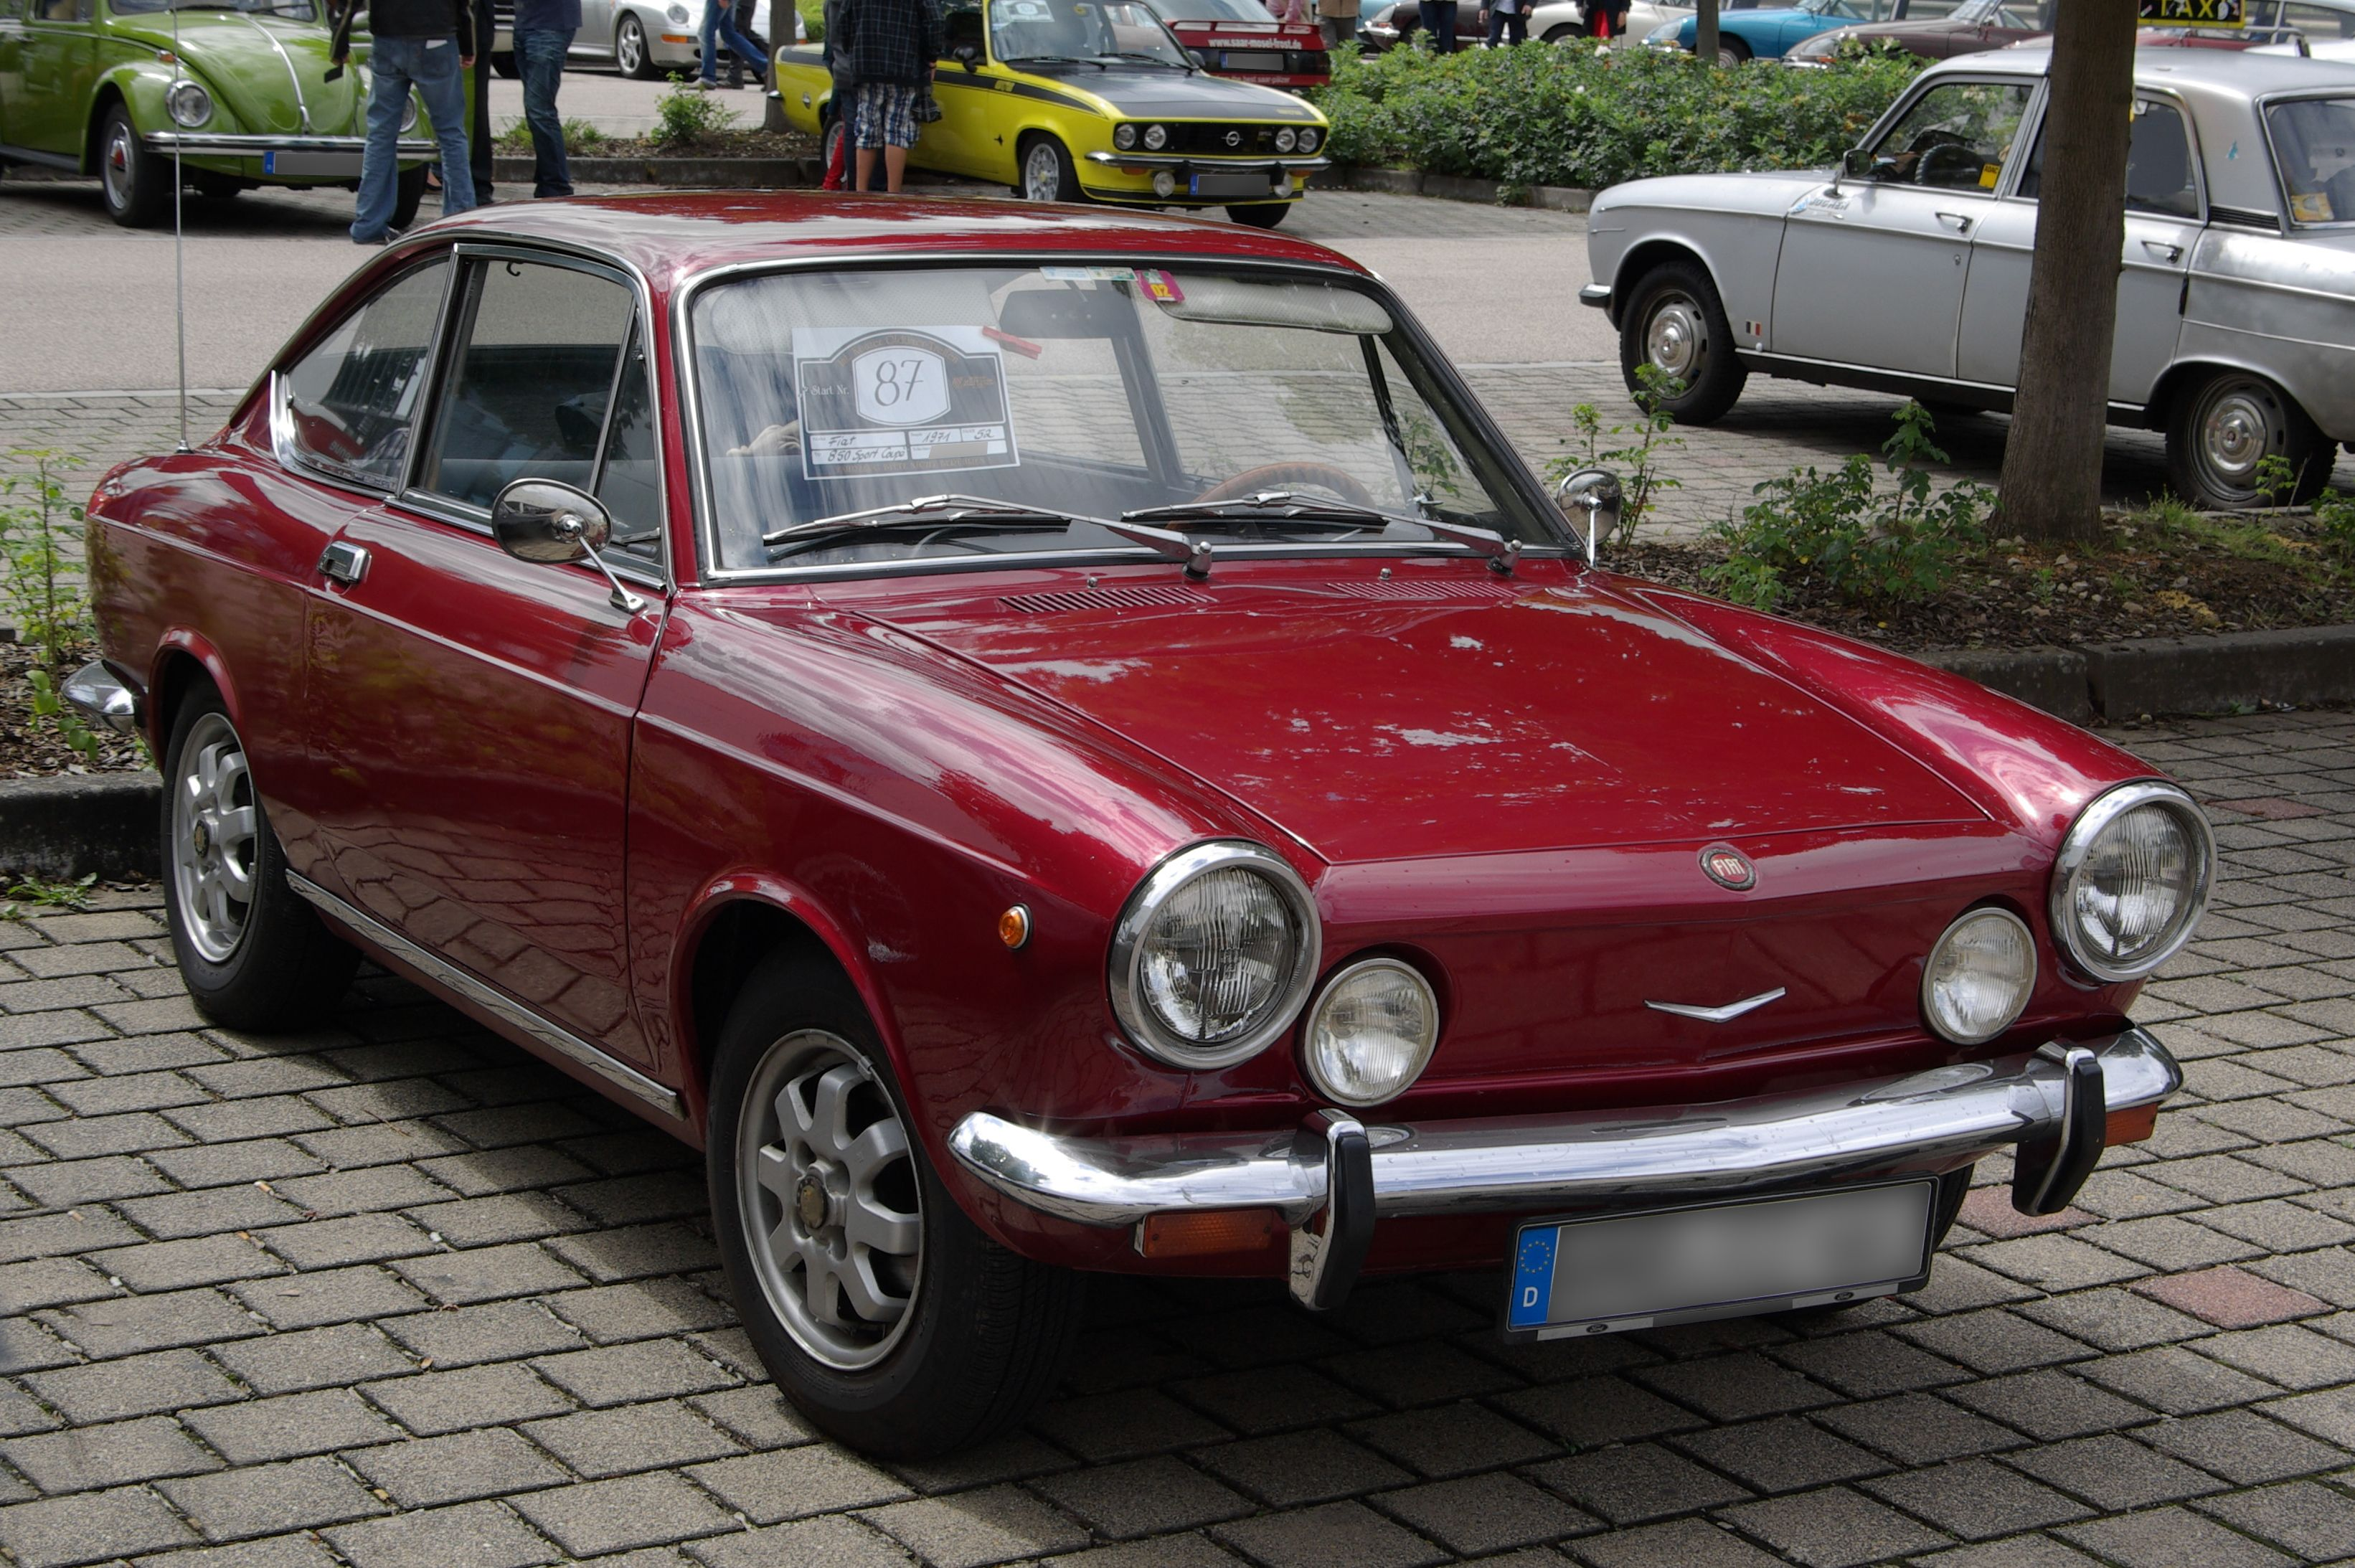 fiat 850 sport coupe Yahoo Search Results Fiat Simca